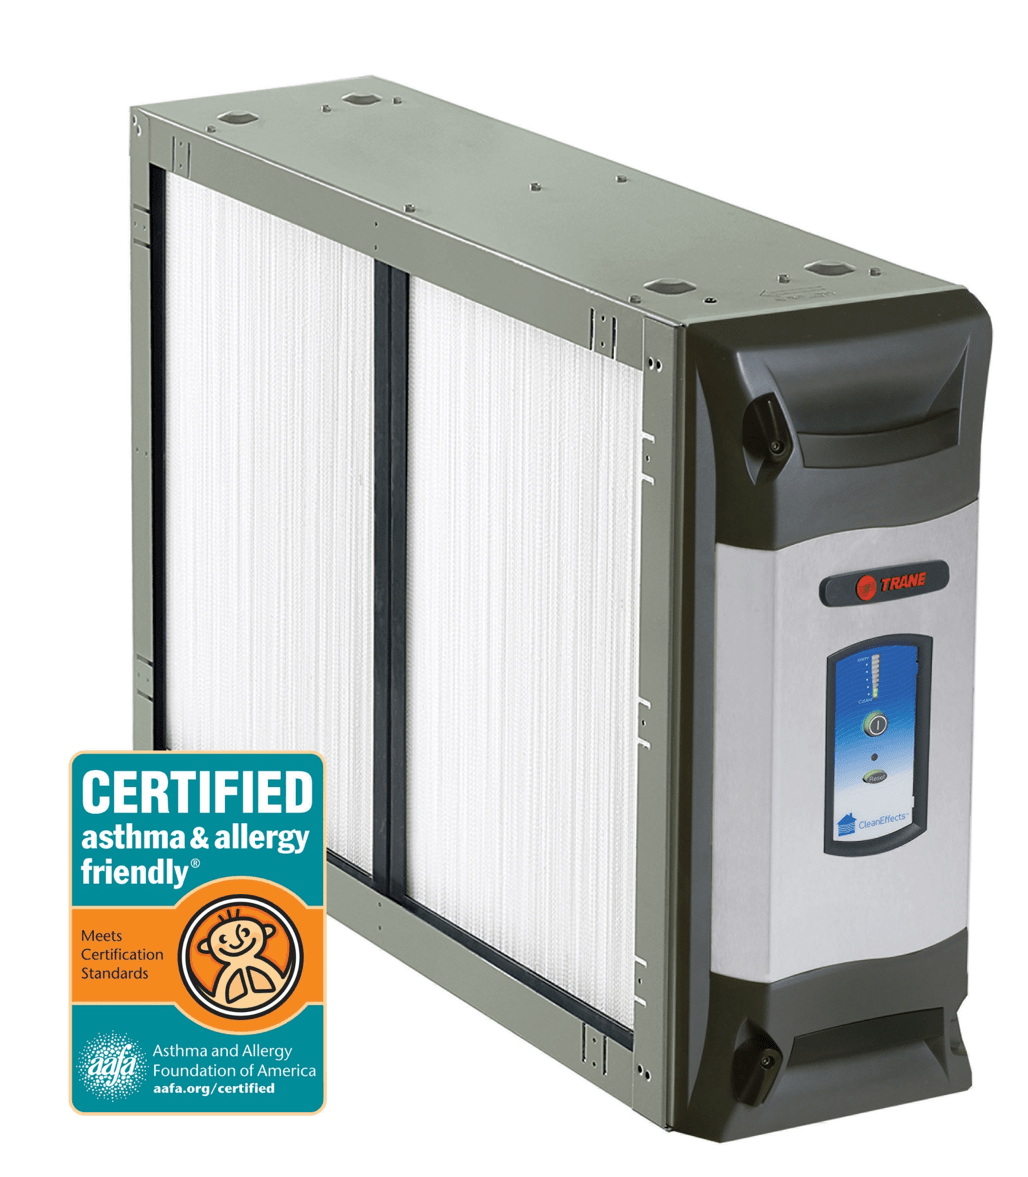 Trane® CleanEffects™ Air Cleaner Is the First Certified asthma & allergy friendly® Whole Home Air Cleaners Option